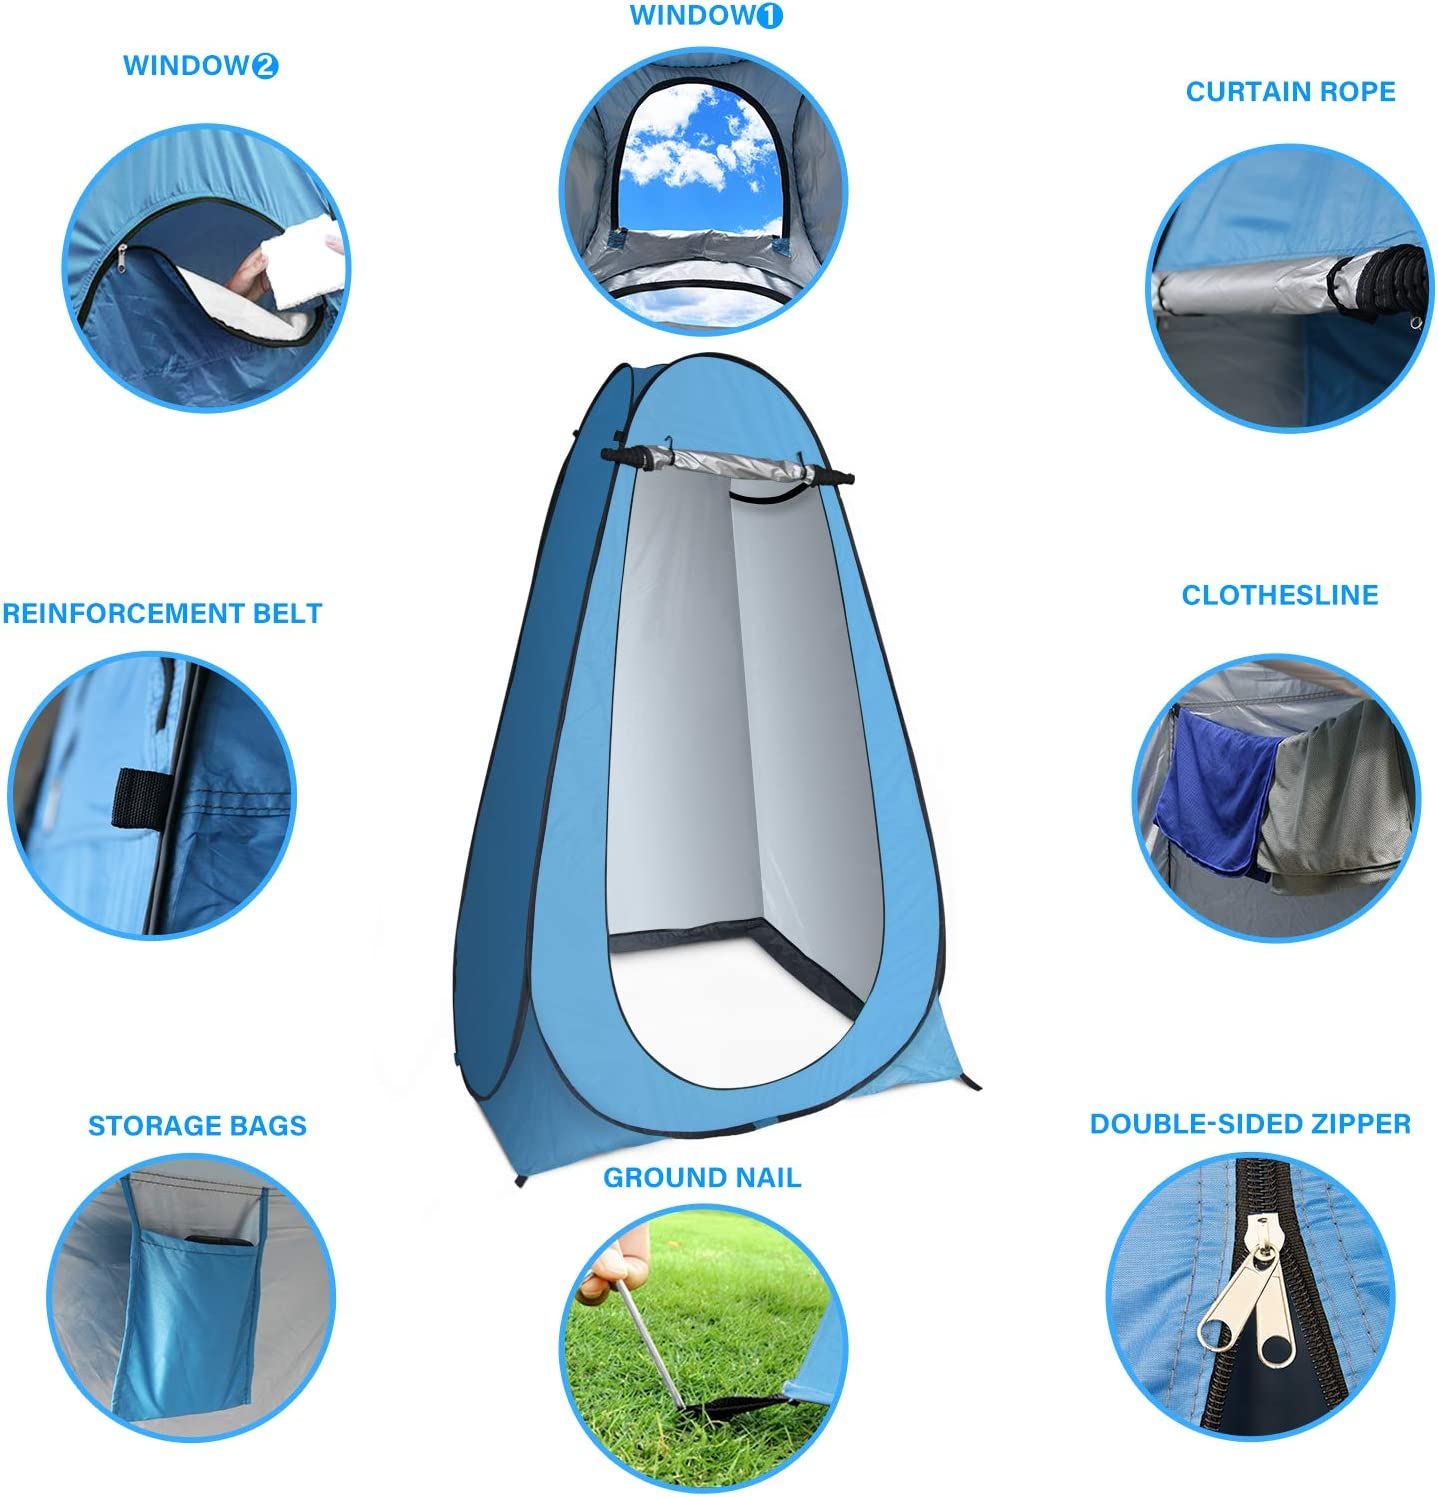 anngrowy Pop Up Privacy Tent Shower Tent Portable Outdoor Camping Bathroom Toilet Tent Changing Dressing Room Privacy Shelters Room for Hiking and Beach – UPF 40+ Waterproof with Carry Bag : Sports & Outdoors